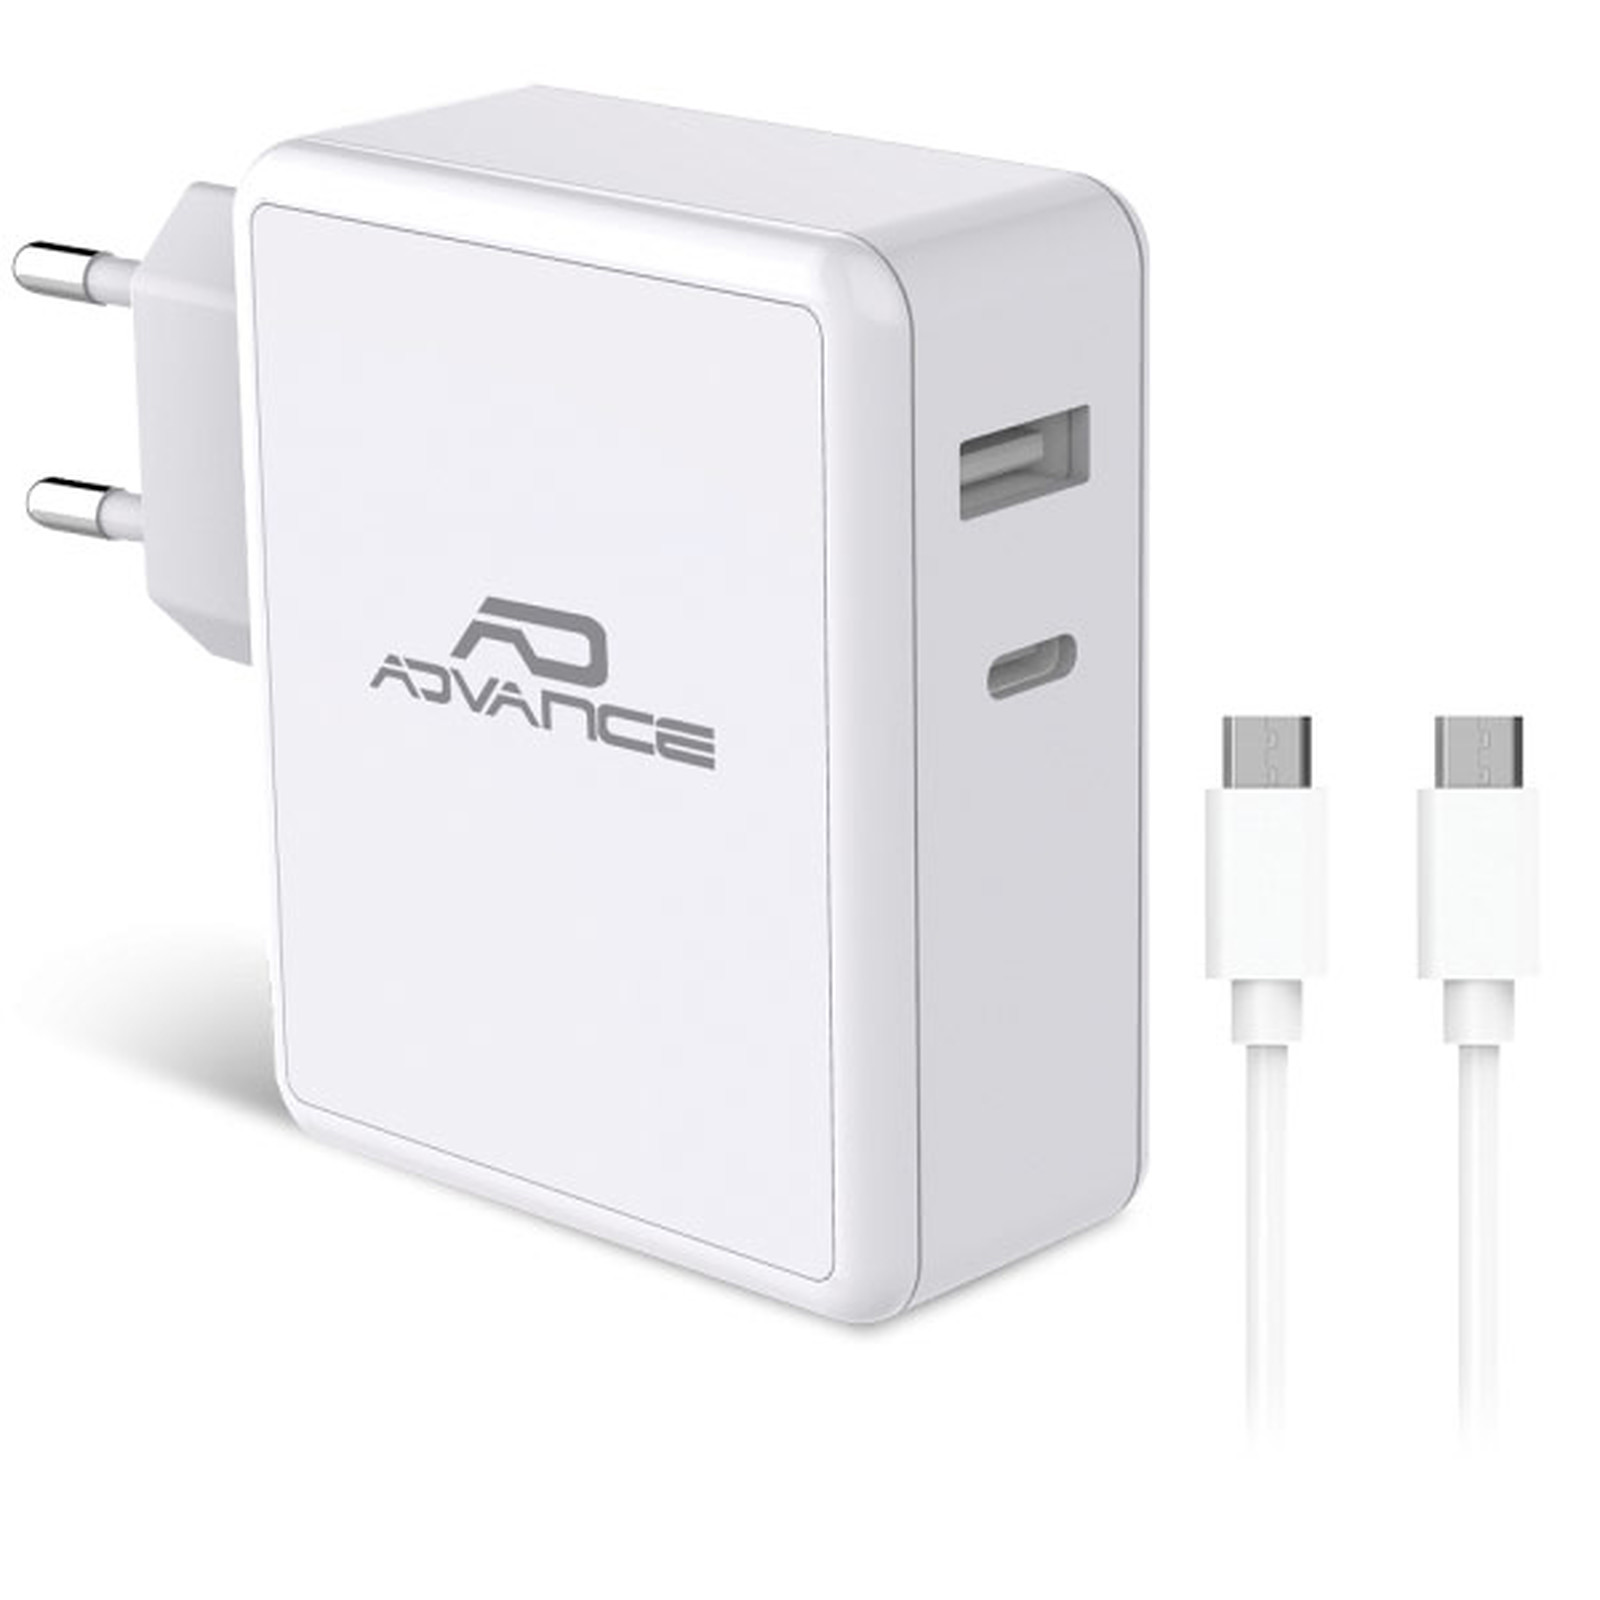 Advance PowerFlex Chargeur mural USB-C et USB-A 45W (Blanc)